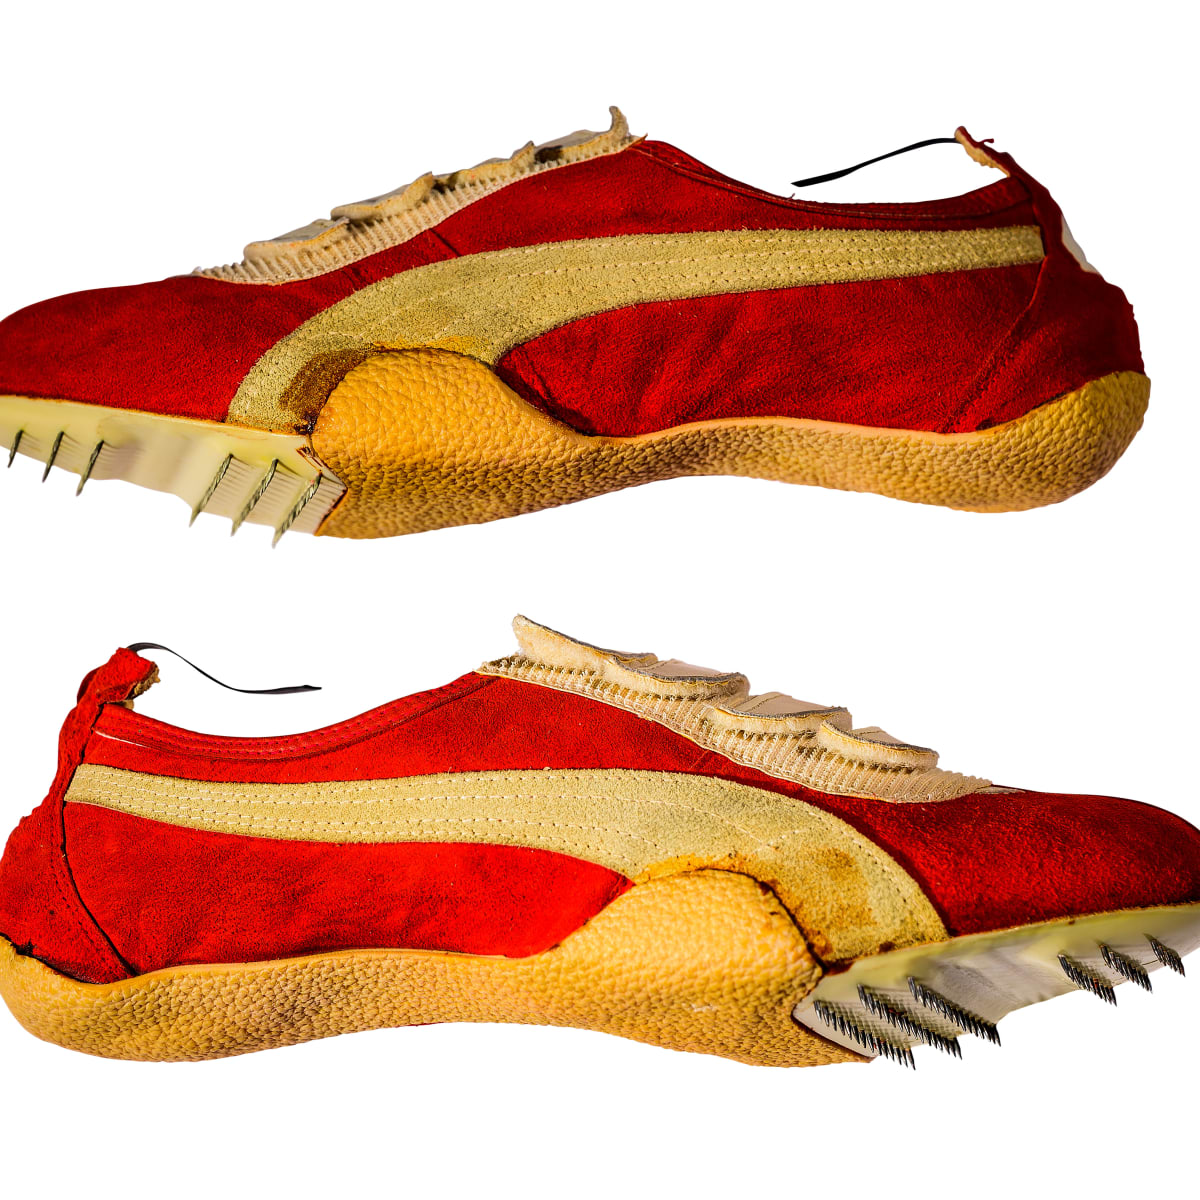 The Puma Shoe That Upended The 1968 Olympics And Threatened Adidas